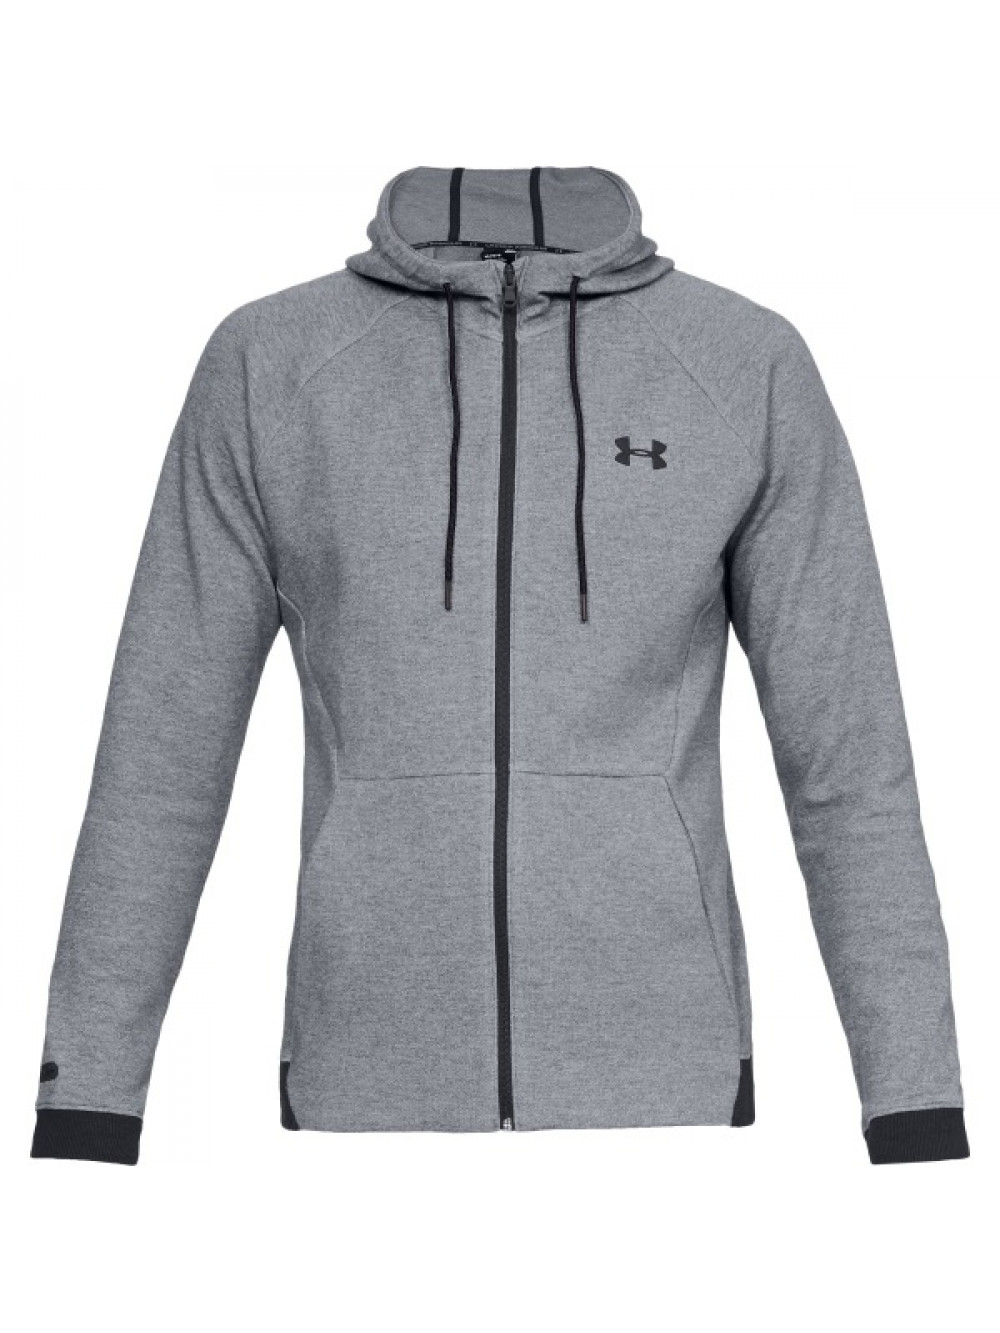 Pánska mikina Under Armour Unstoppable 2X KNIT FZ Gray Steel Sivá